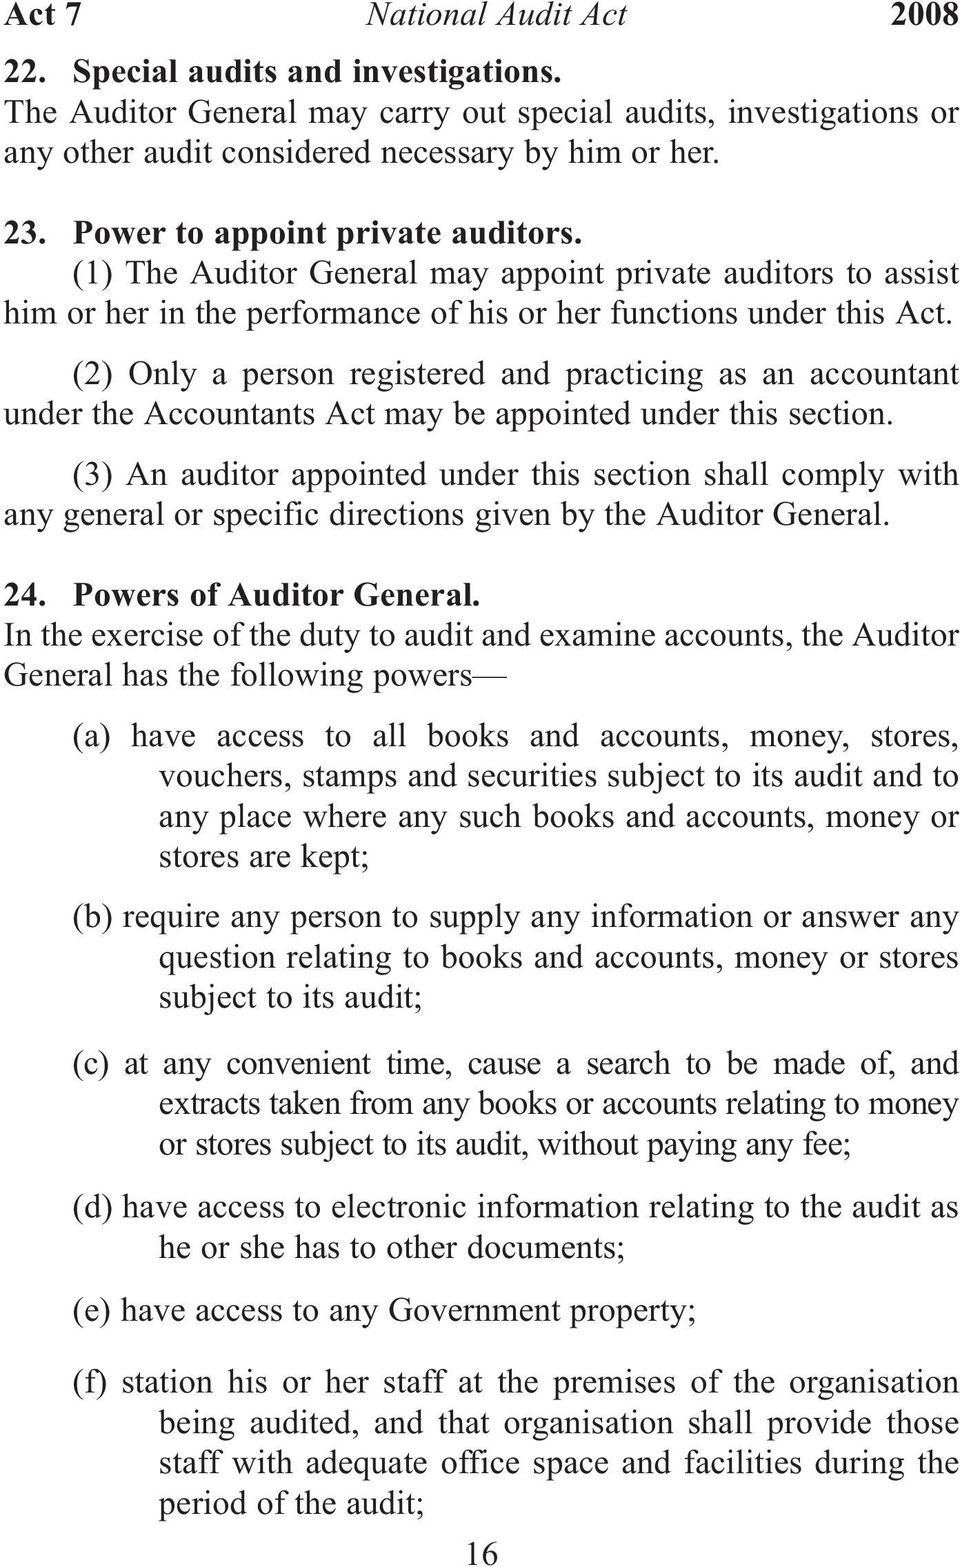 (2) Only a person registered and practicing as an accountant under the Accountants Act may be appointed under this section.